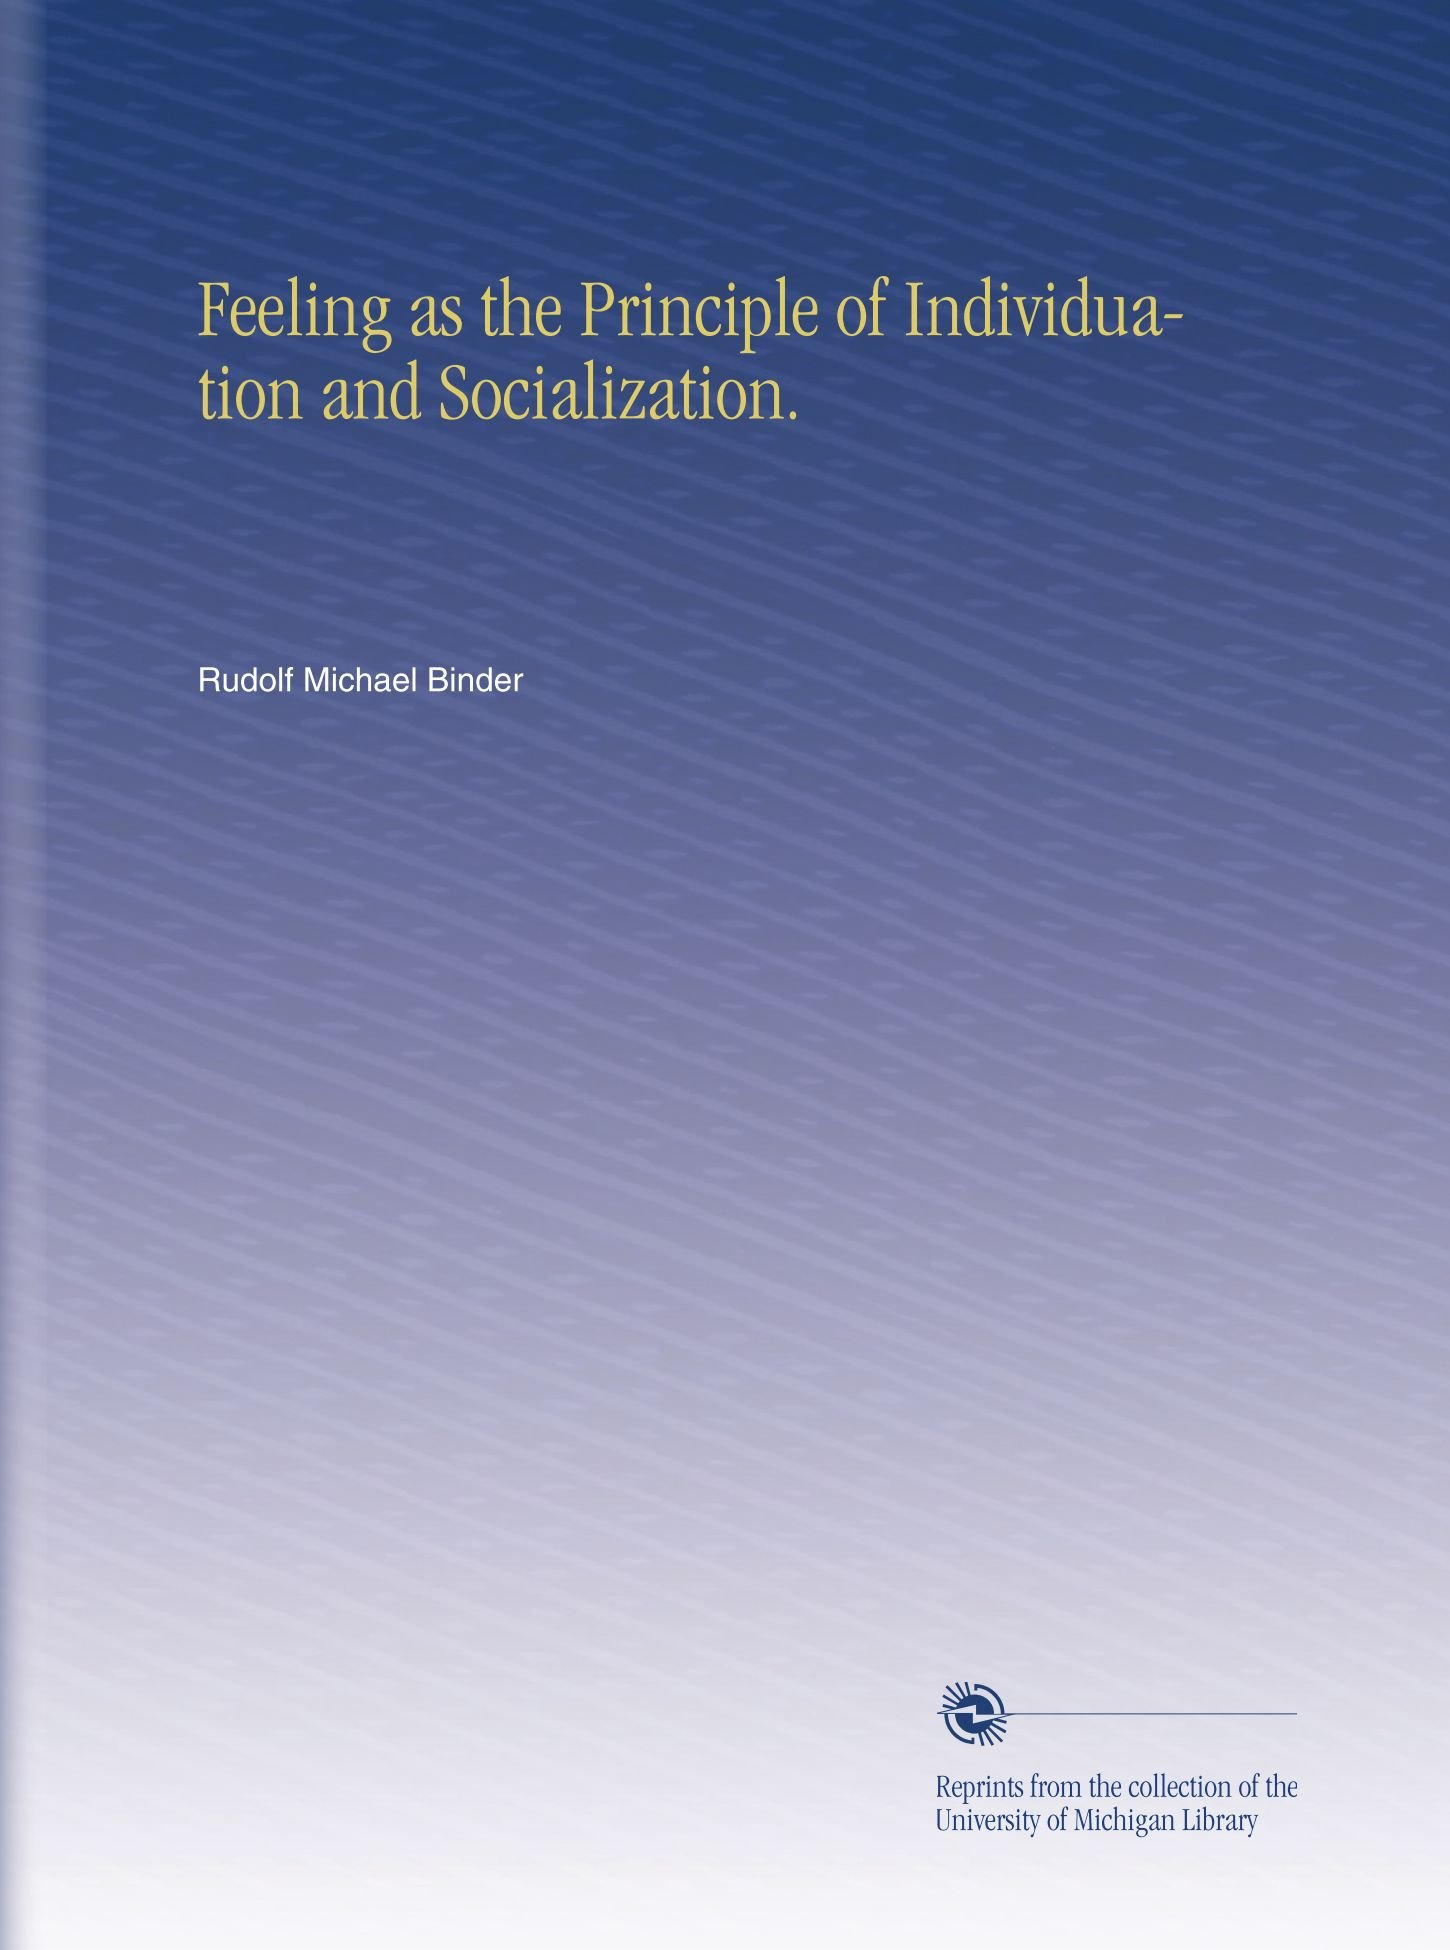 Download Feeling as the Principle of Individuation and Socialization. pdf epub